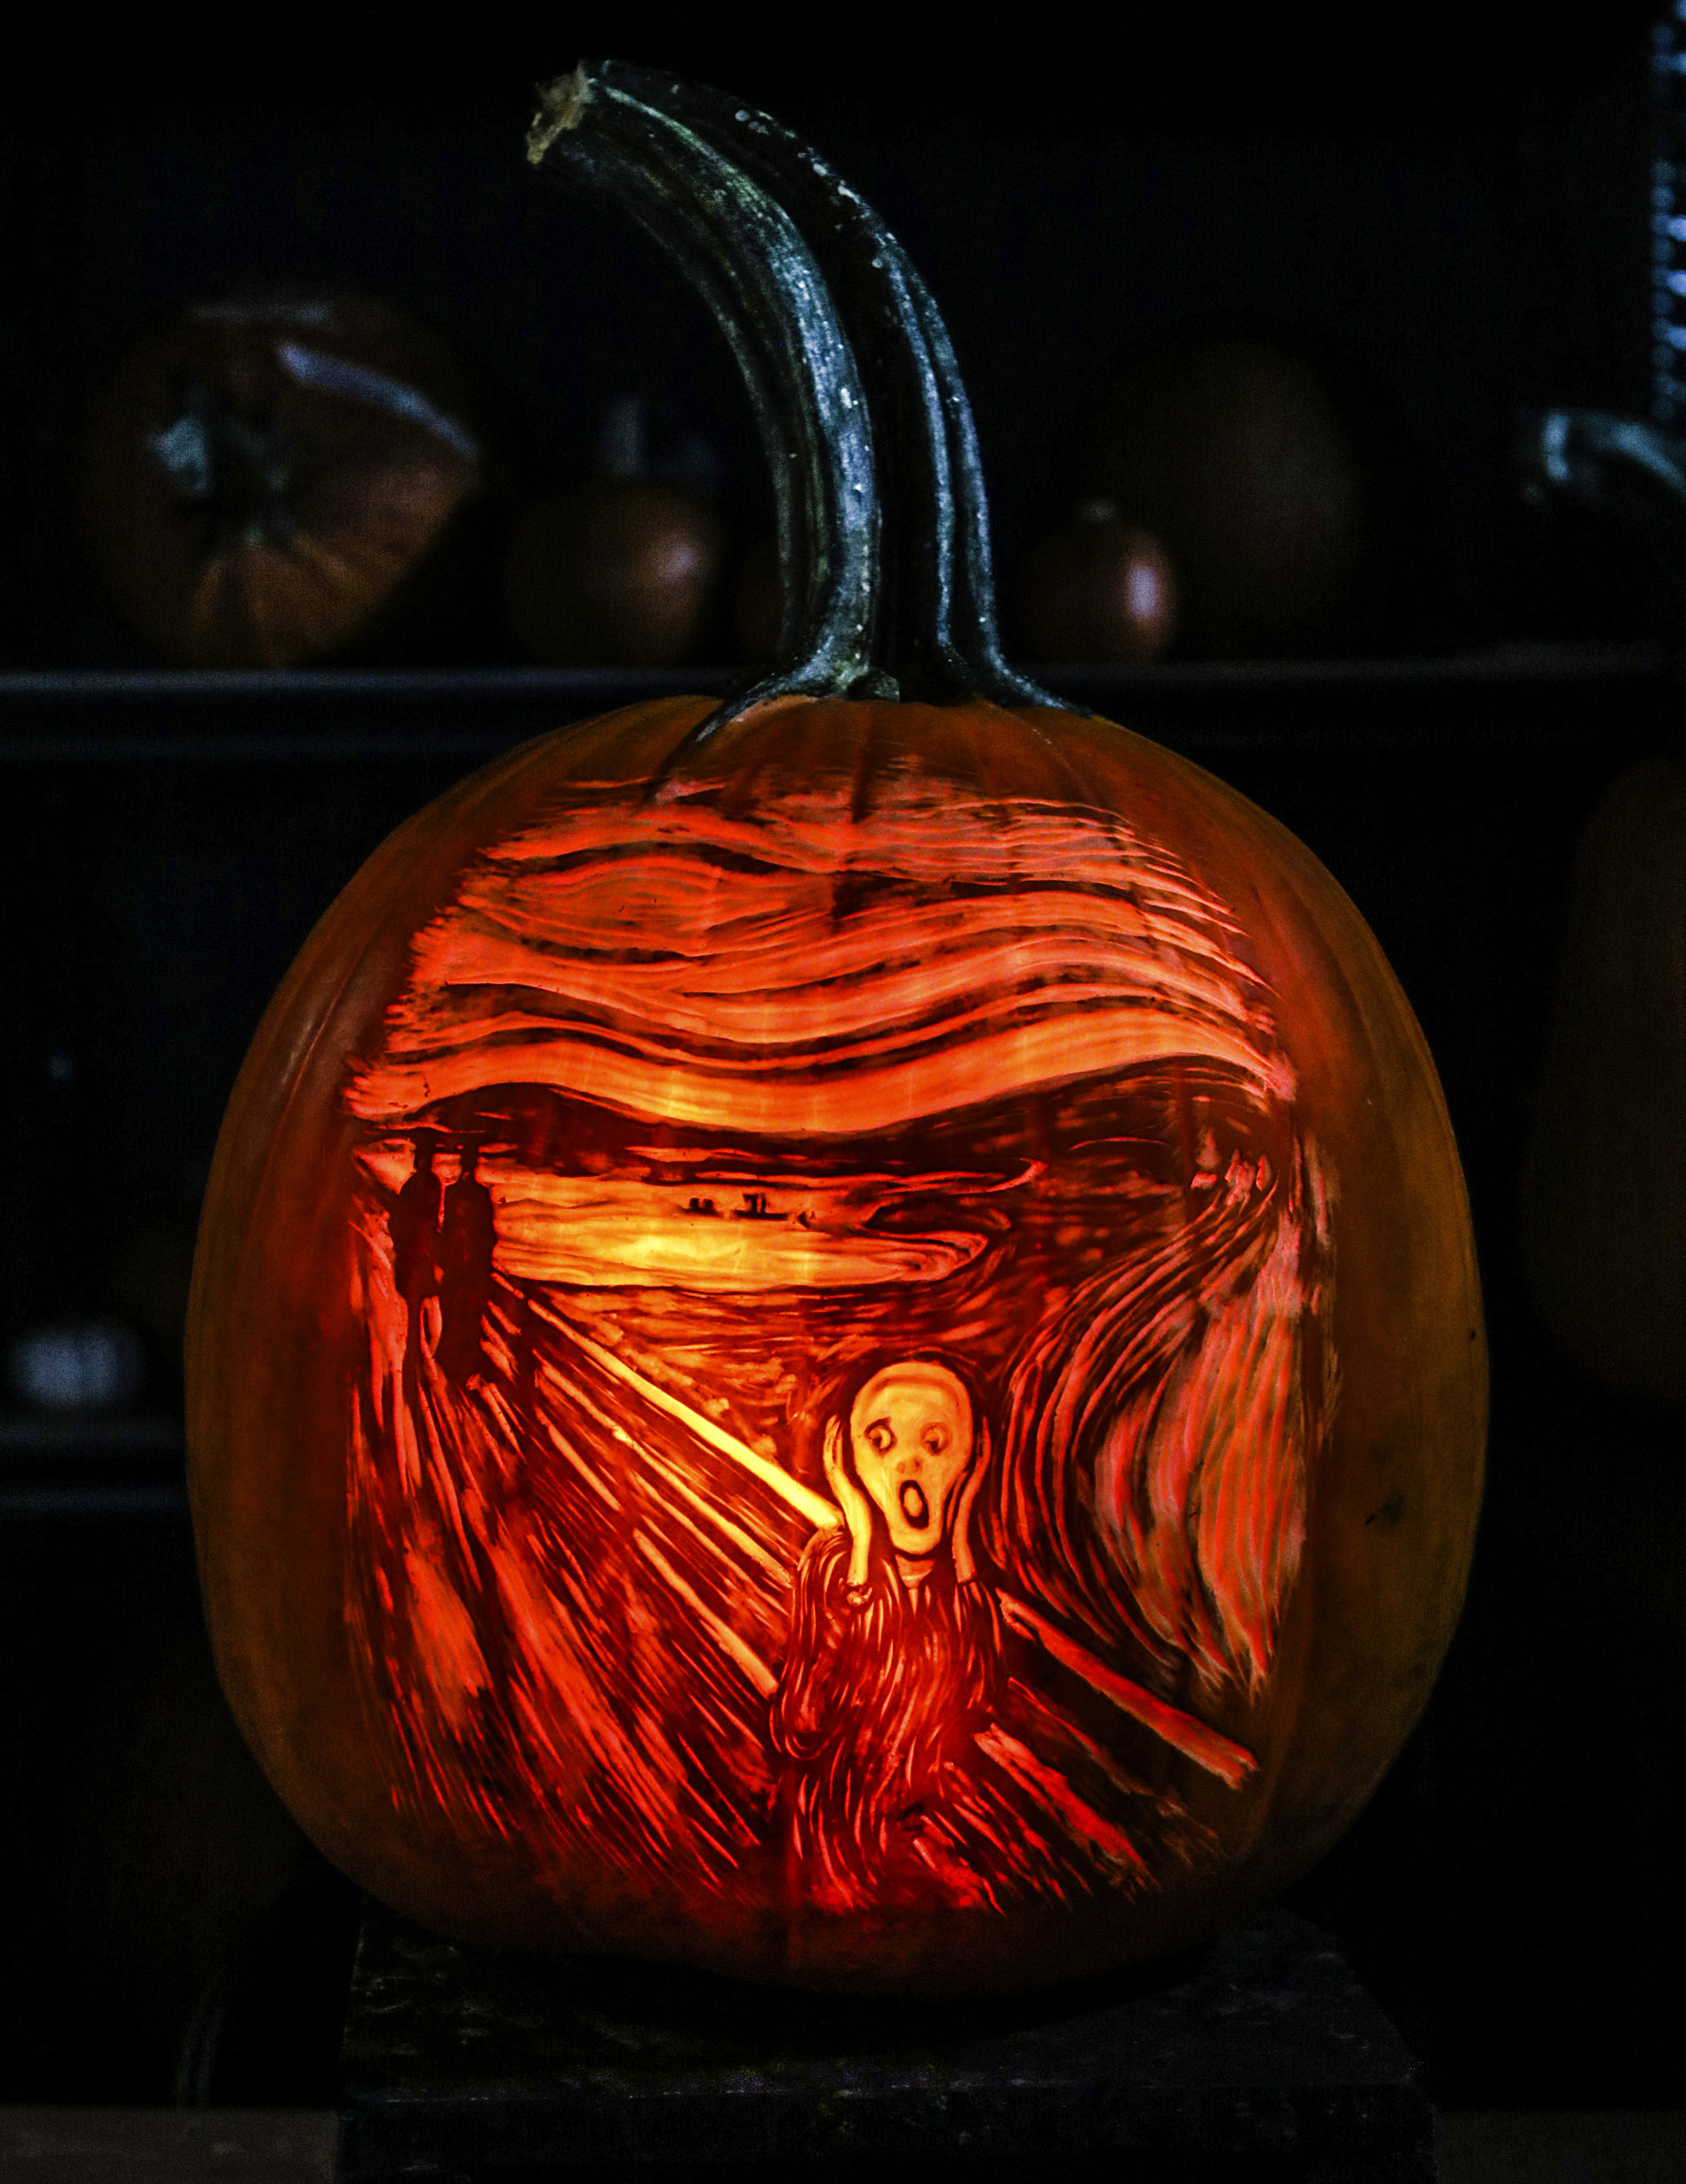 a pumpkin carved in the image of Edvard Munch's The Scream